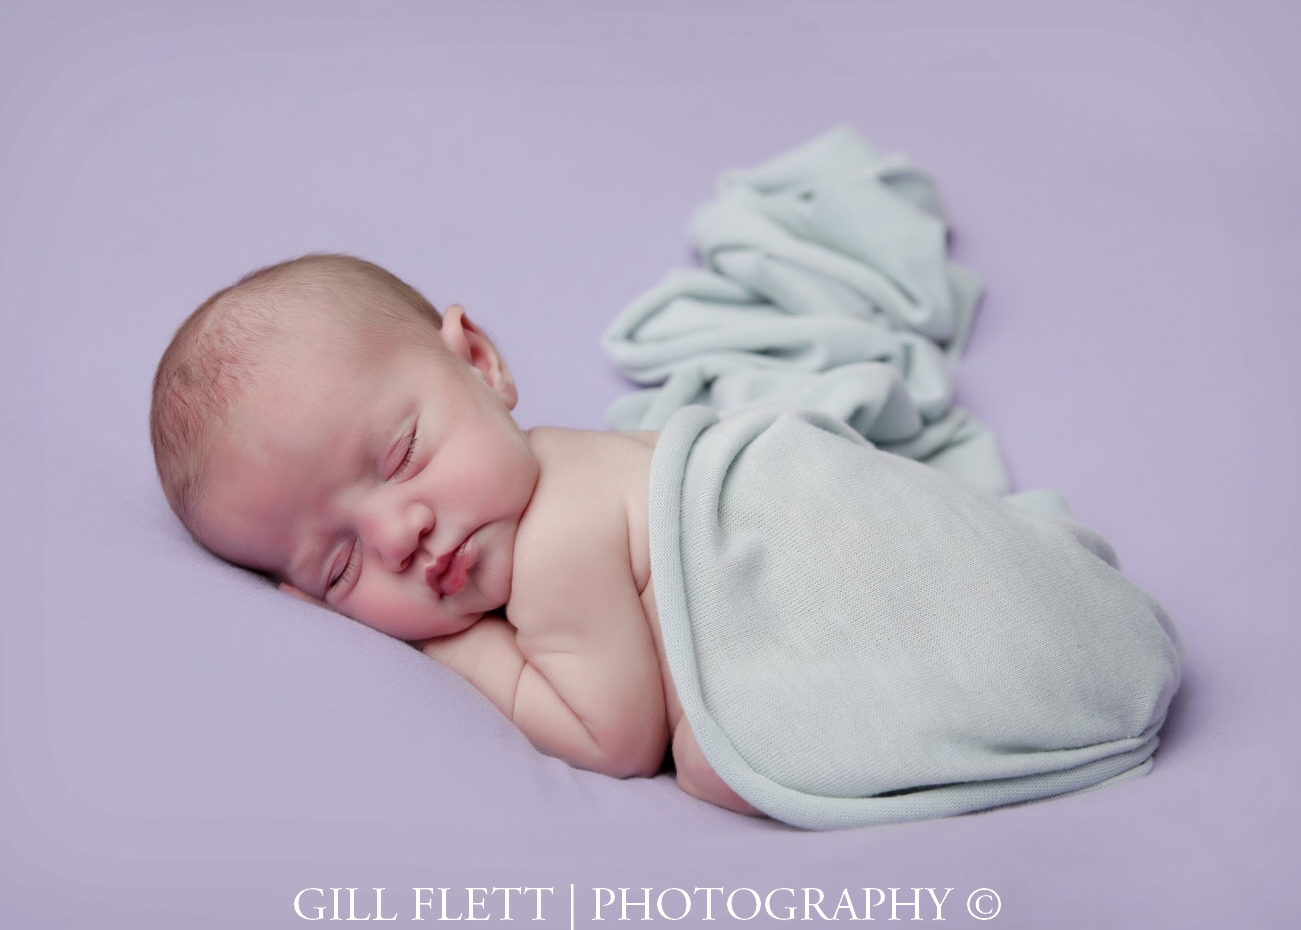 newborn-side-pose-lavendar-background-mint-gillflett-photo-london.jpg